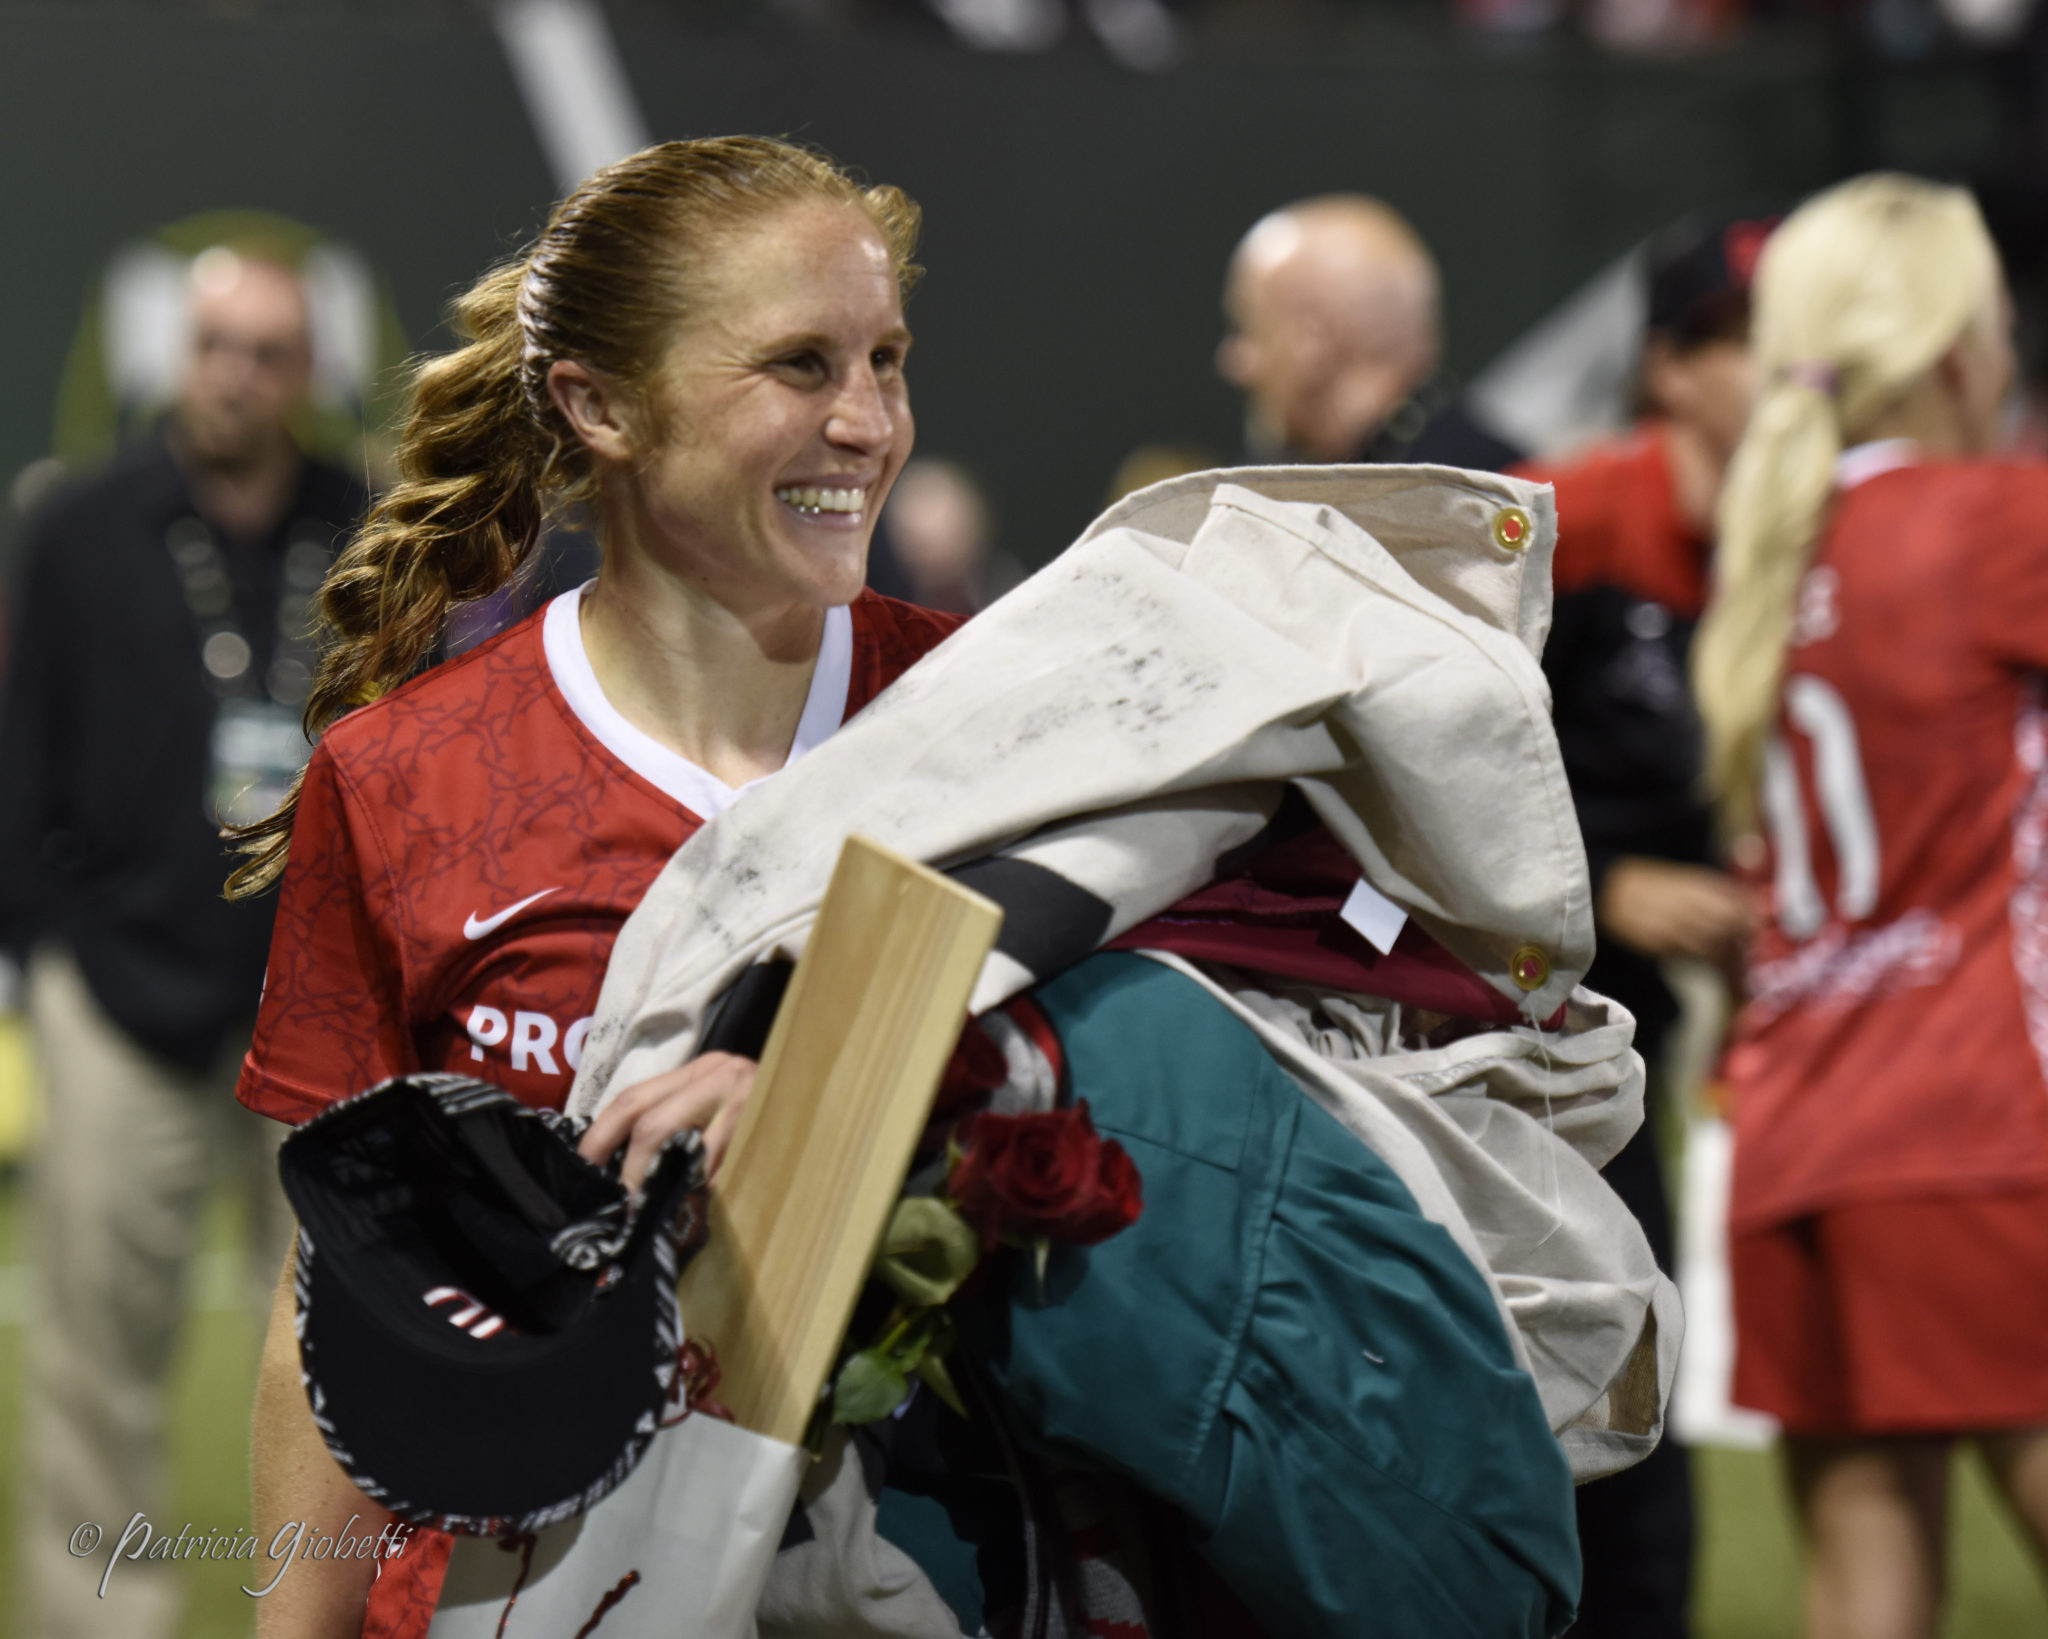 Rachel Van Hollebeke played her final professional game last month before immediately beginning medical school. (Photo Copyright Patricia Giobetti for The Equalizer)